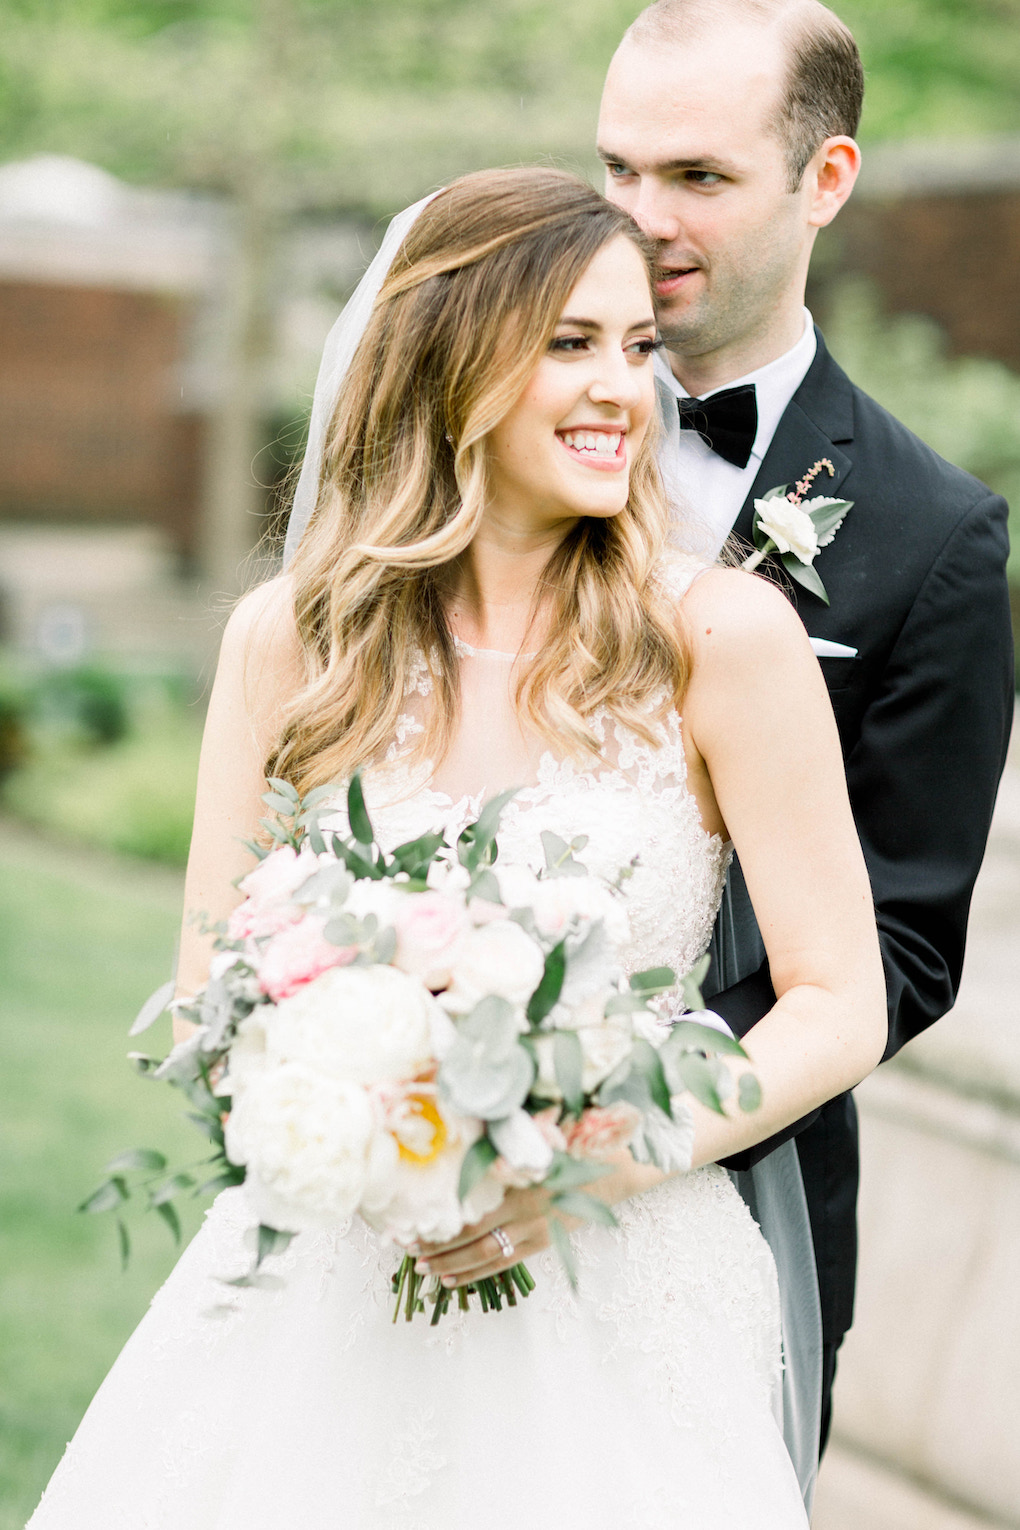 Bride and groom outdoor wedding photos: Romantic Fairytale wedding at the Omni William Penn in Pittsburgh, PA planned by Exhale Events. Find more wedding inspiration at exhale-events.com!